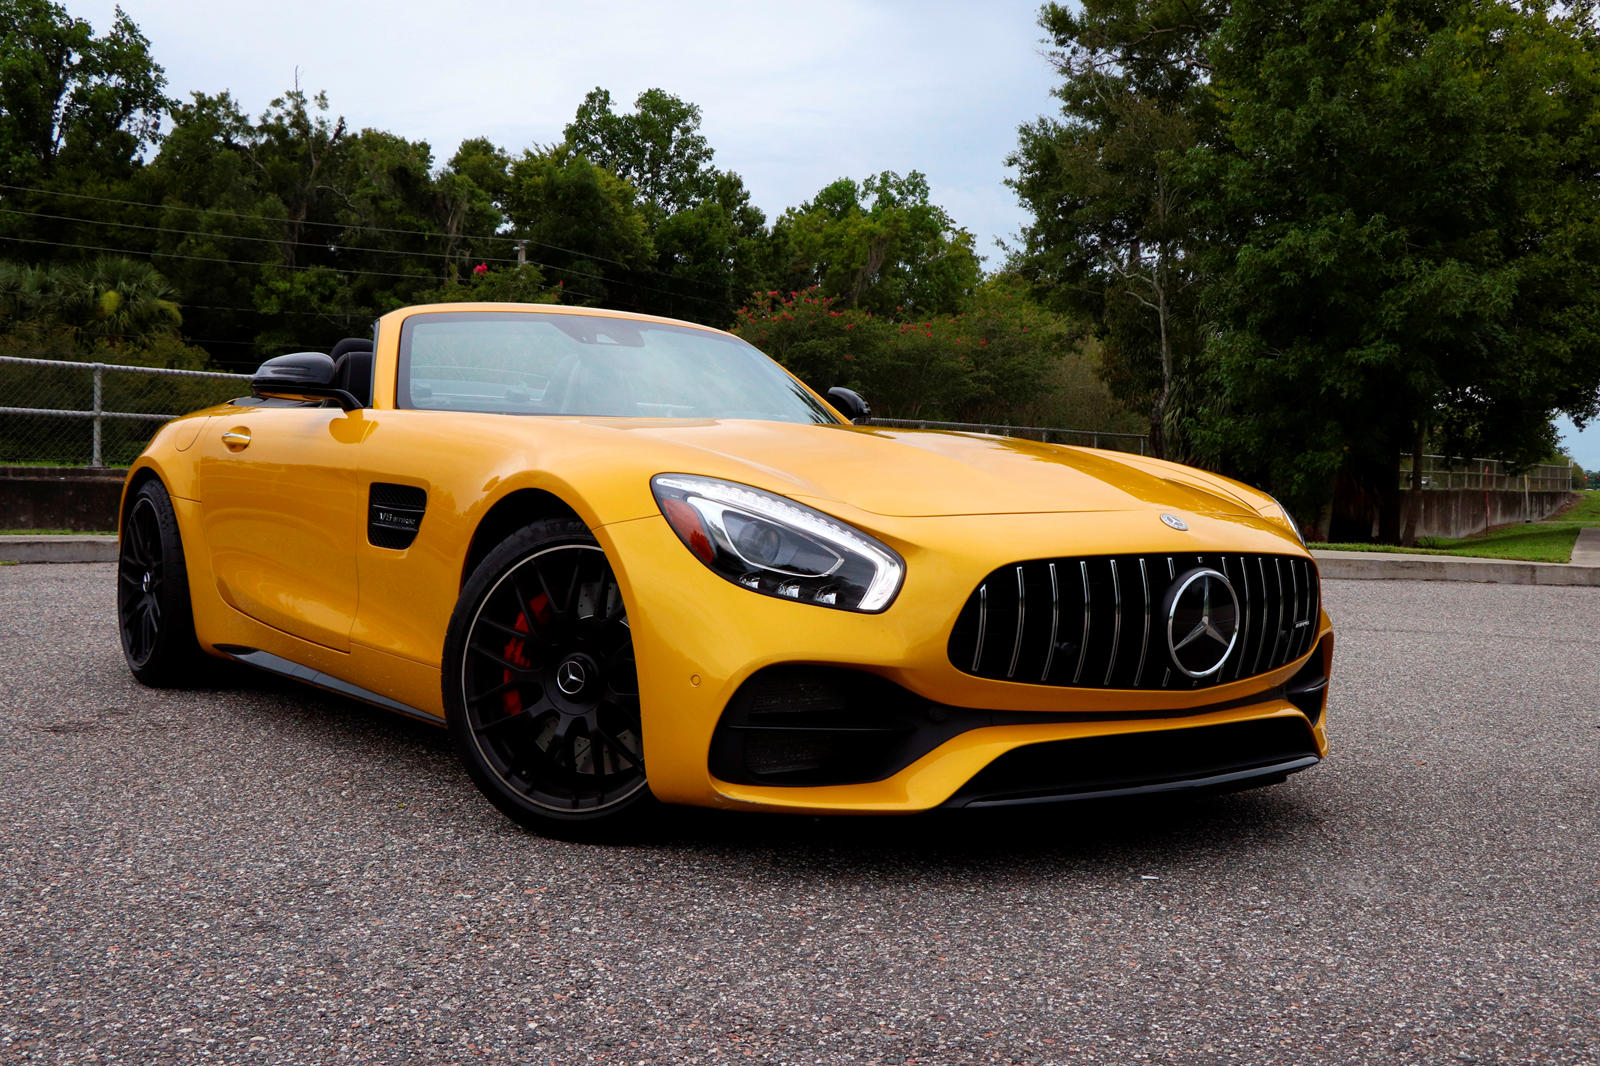 2019 Mercedes-AMG GT C Roadster Test Drive Review: Bold And Brash